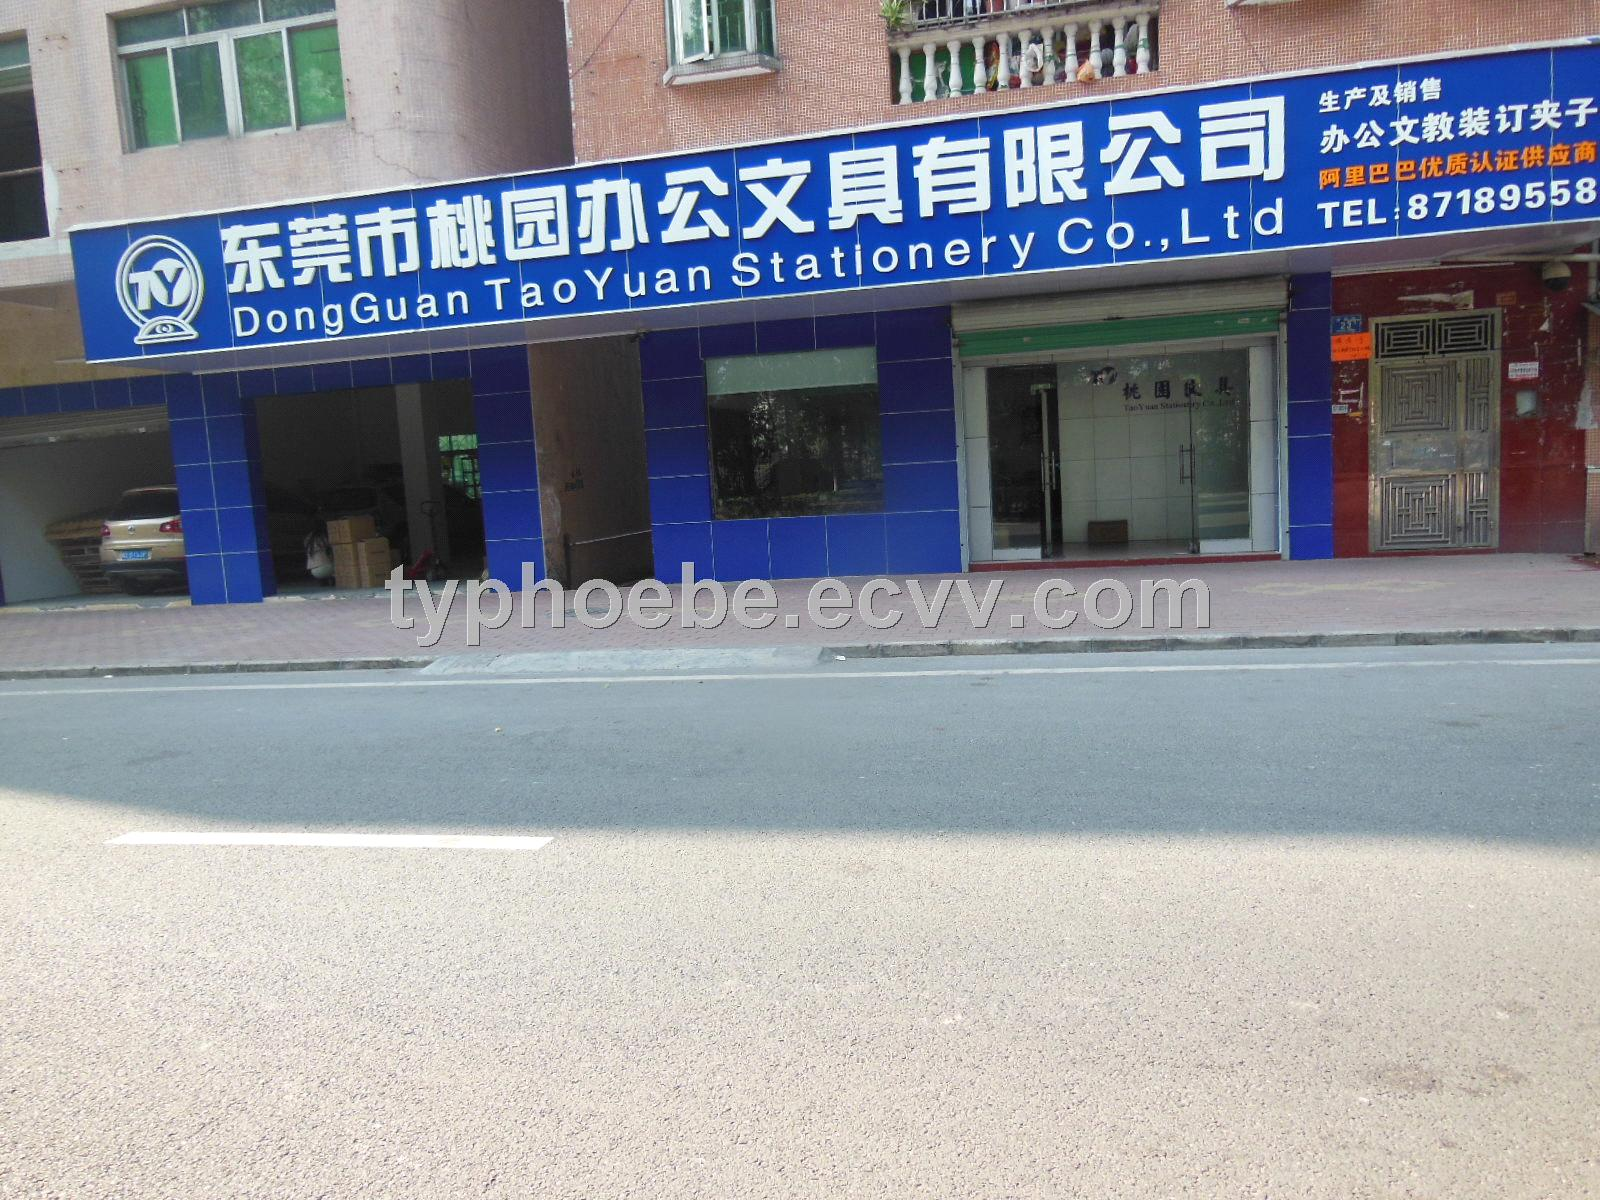 Dongguan Tao Yuan Hardware Stationery Co., Ltd.